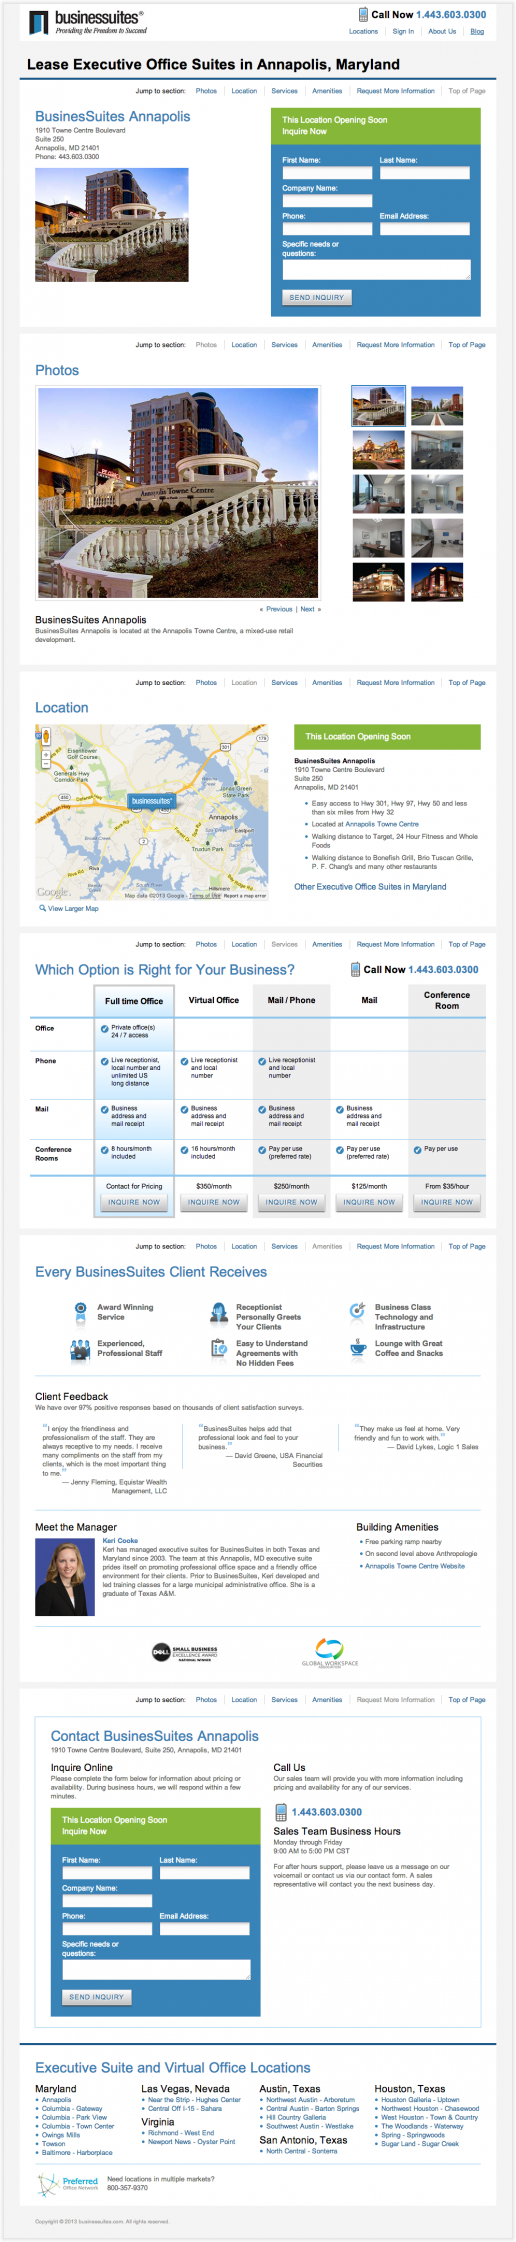 BusinesSuites Property Available Soon Page – example 2